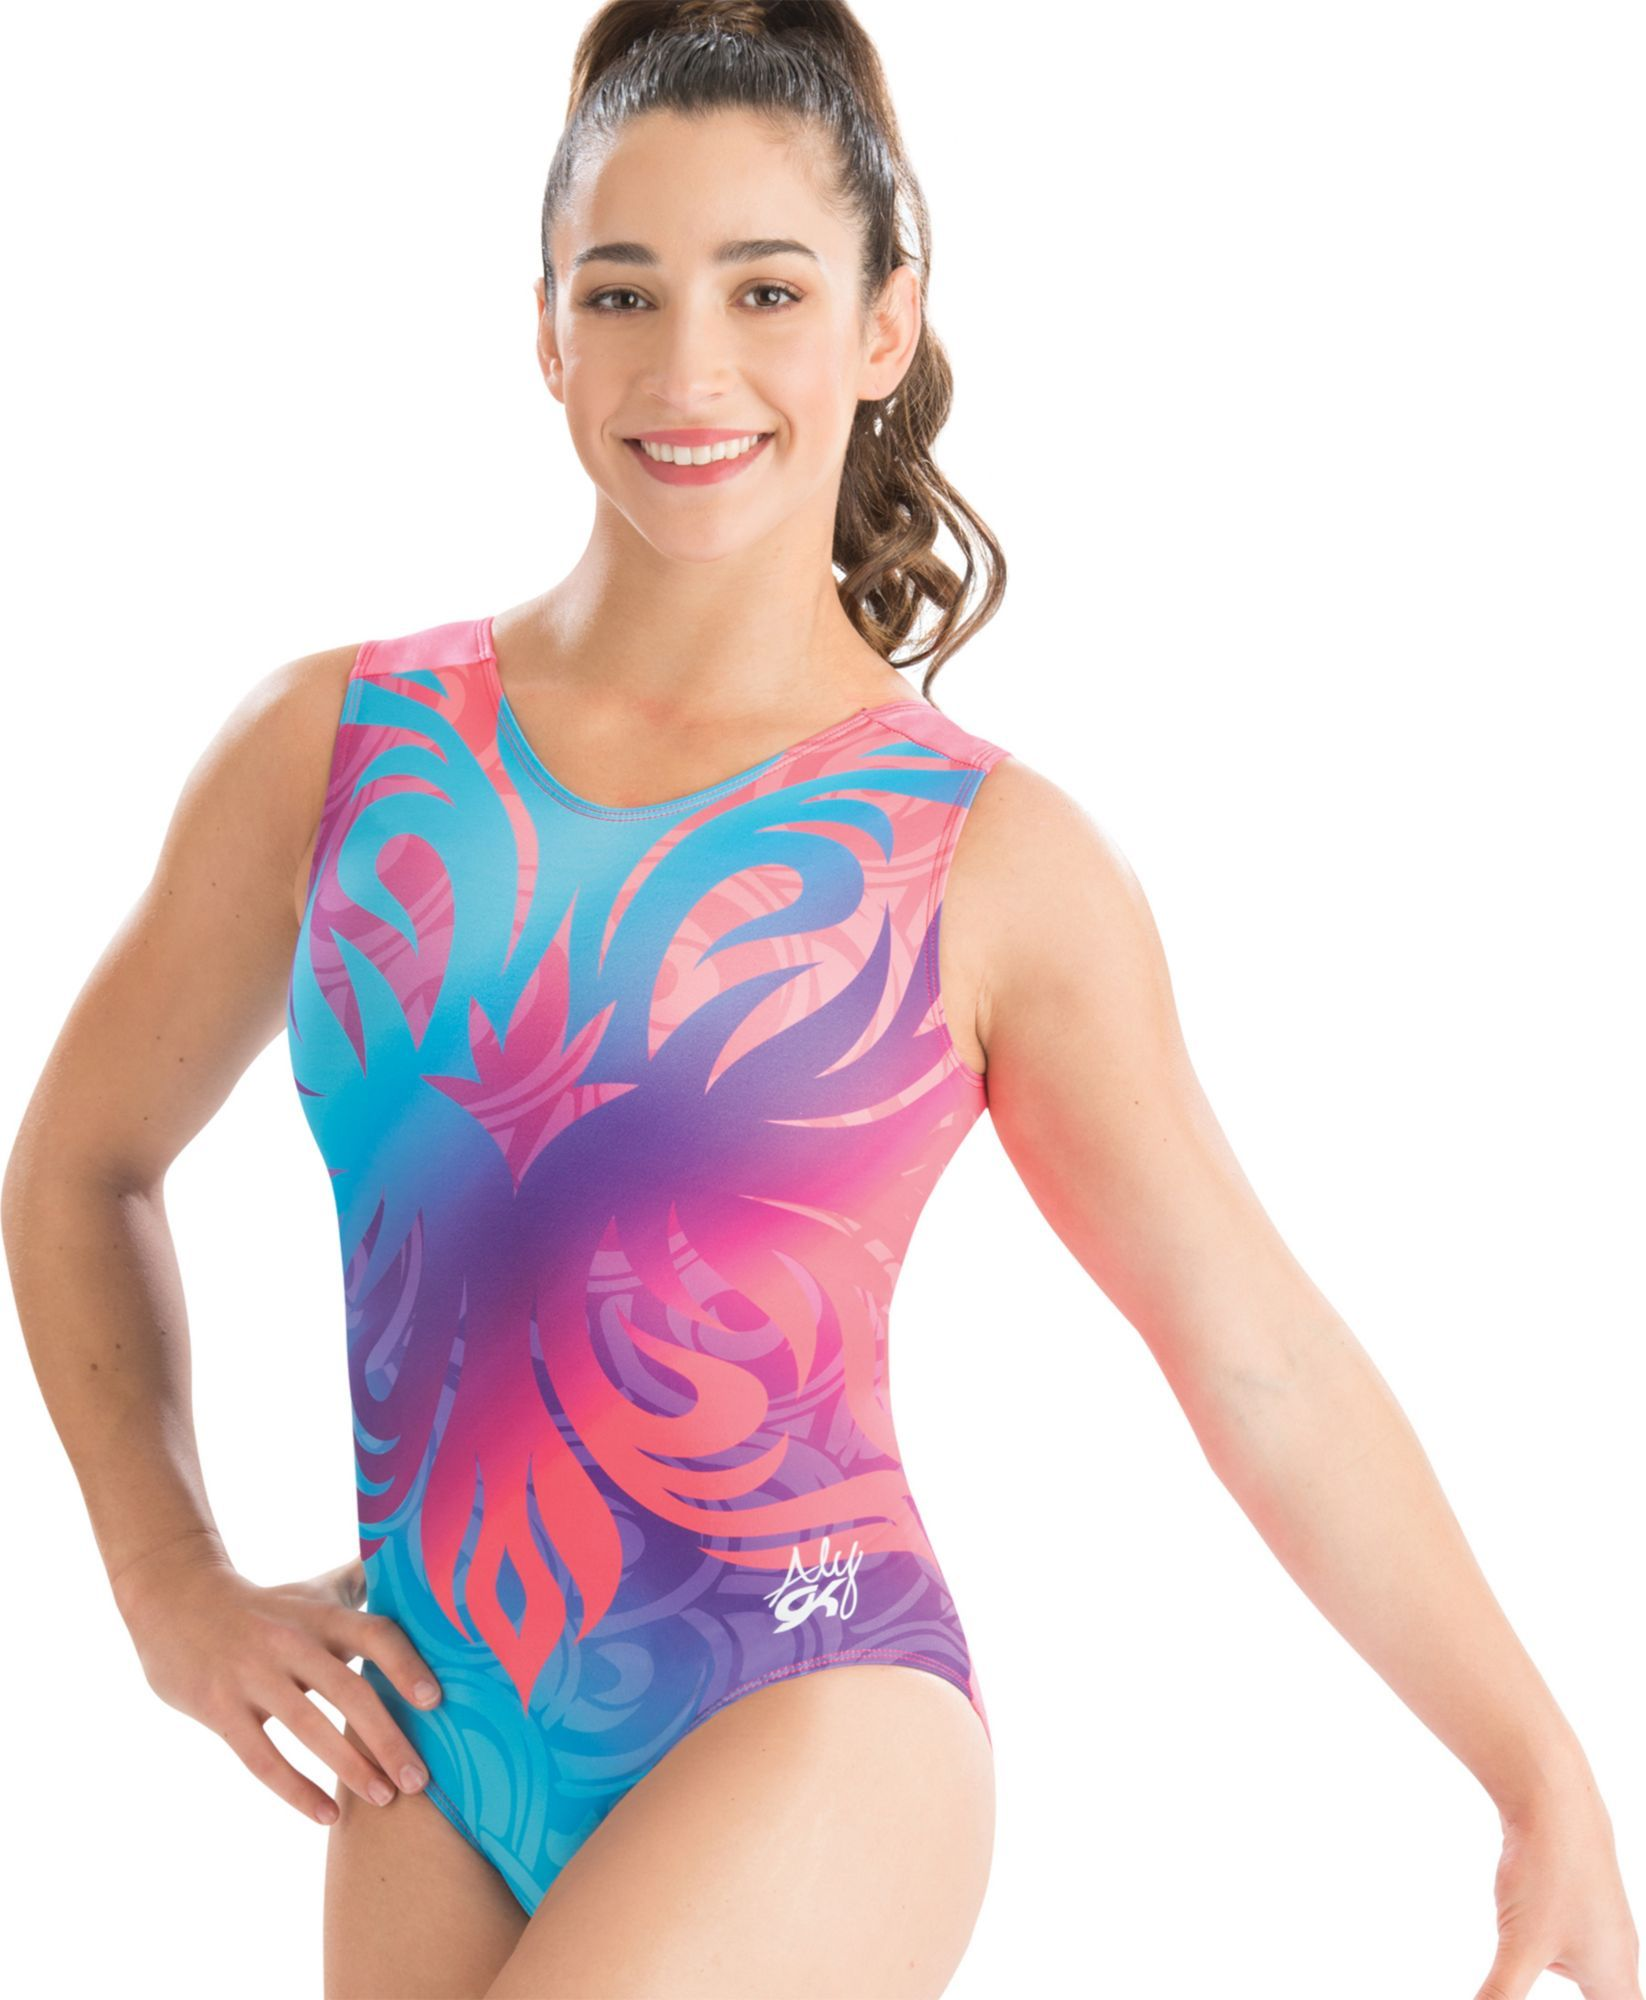 370b46d0da73 GK Elite Women s Aly Raisman Artistic Bloom Gymnastics Leotard